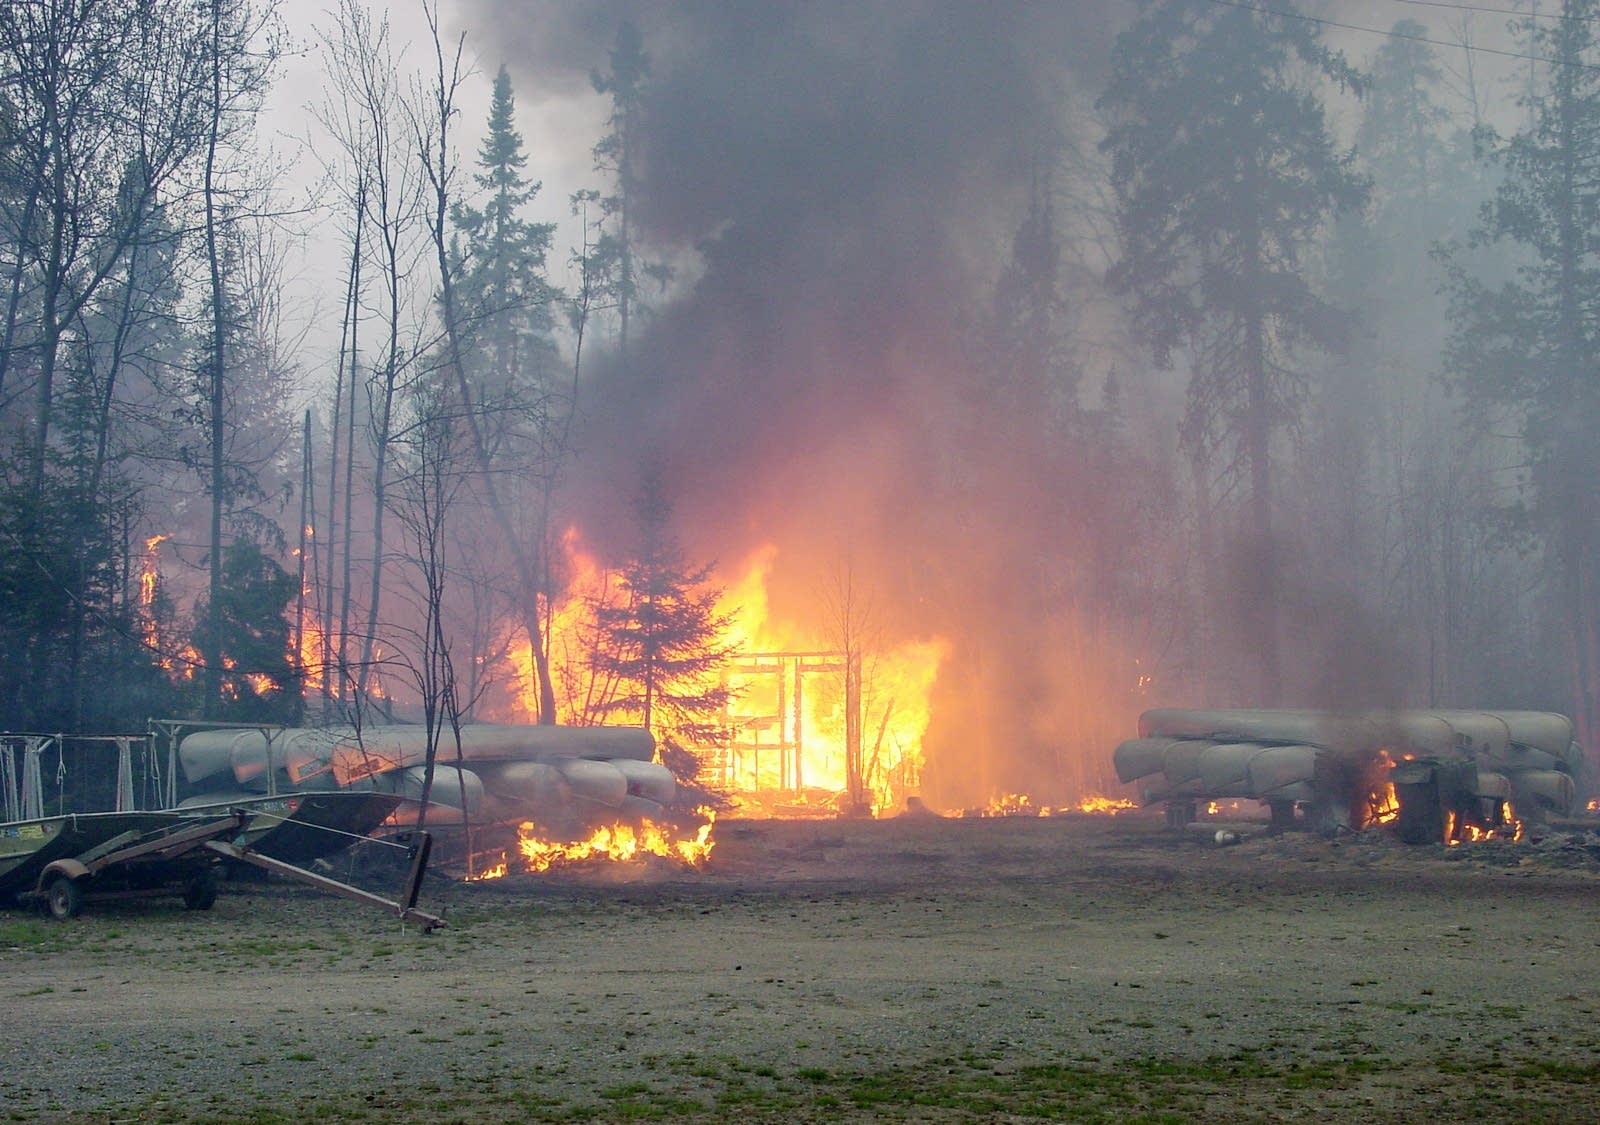 An outfitter is a complete loss before firefighters could save it.